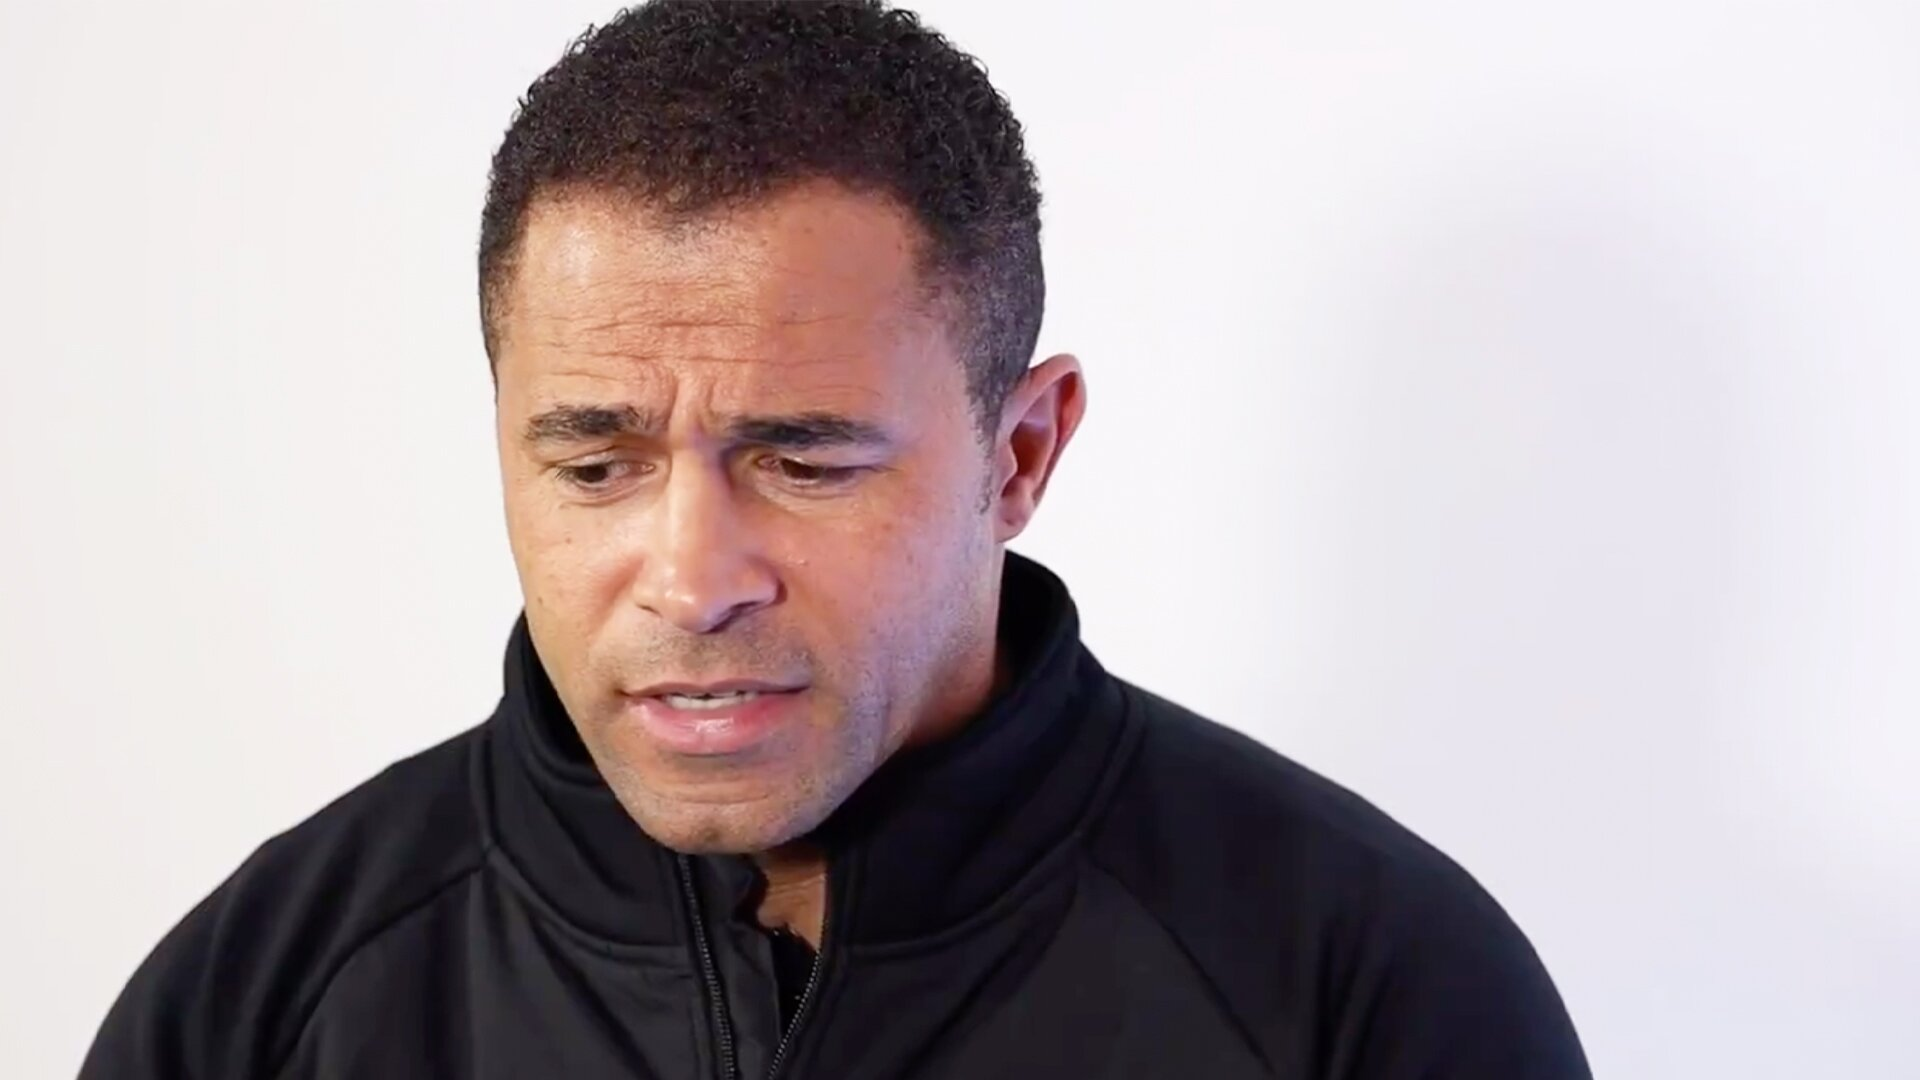 England Rugby issue public apology to Jason Robinson after captaincy recognition snub